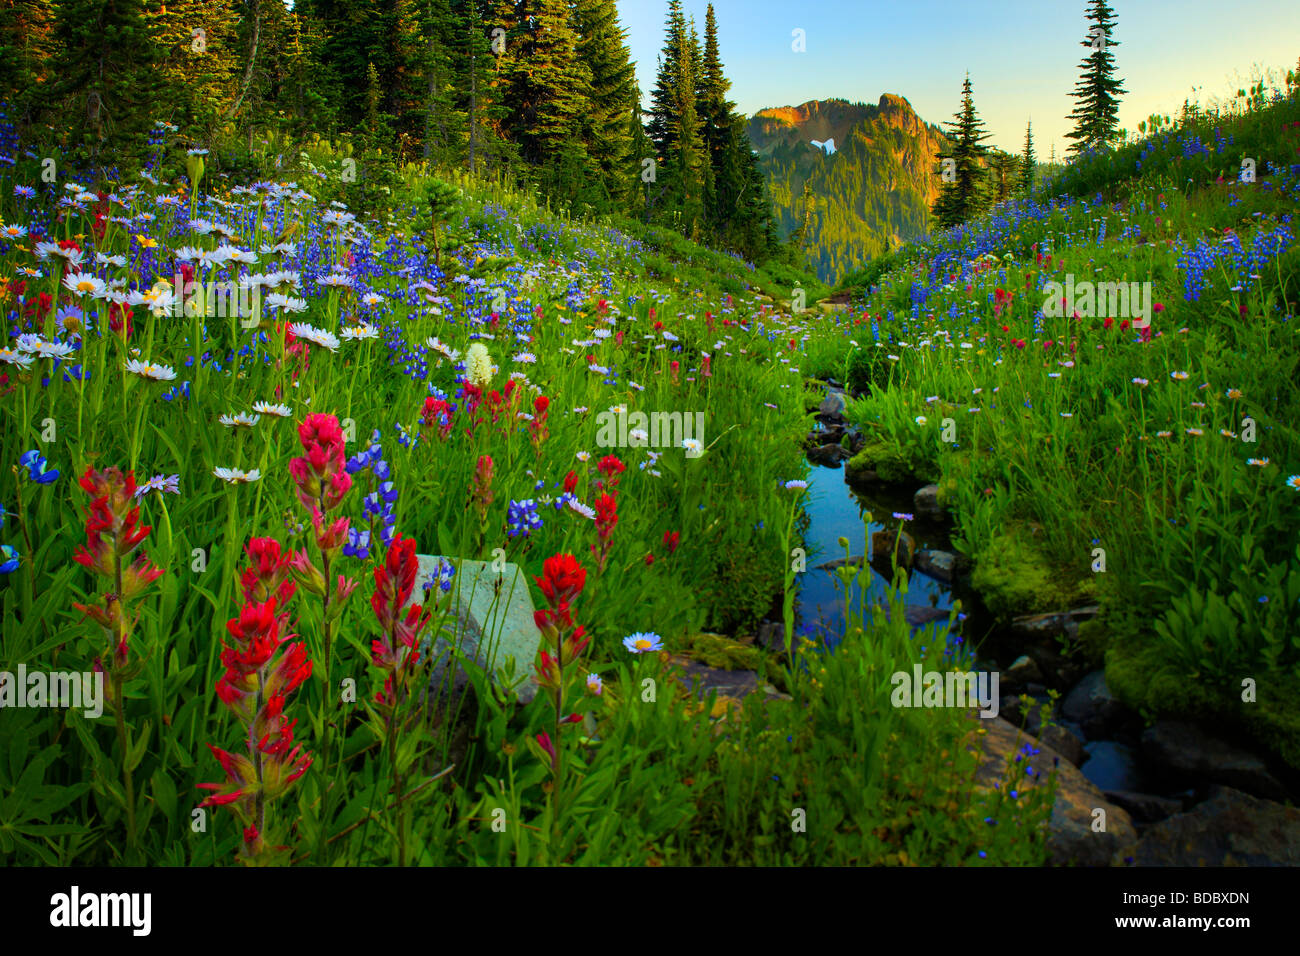 Wildflowers lining a creek along Naches Peak trail in Mount Rainier National Park - Stock Image